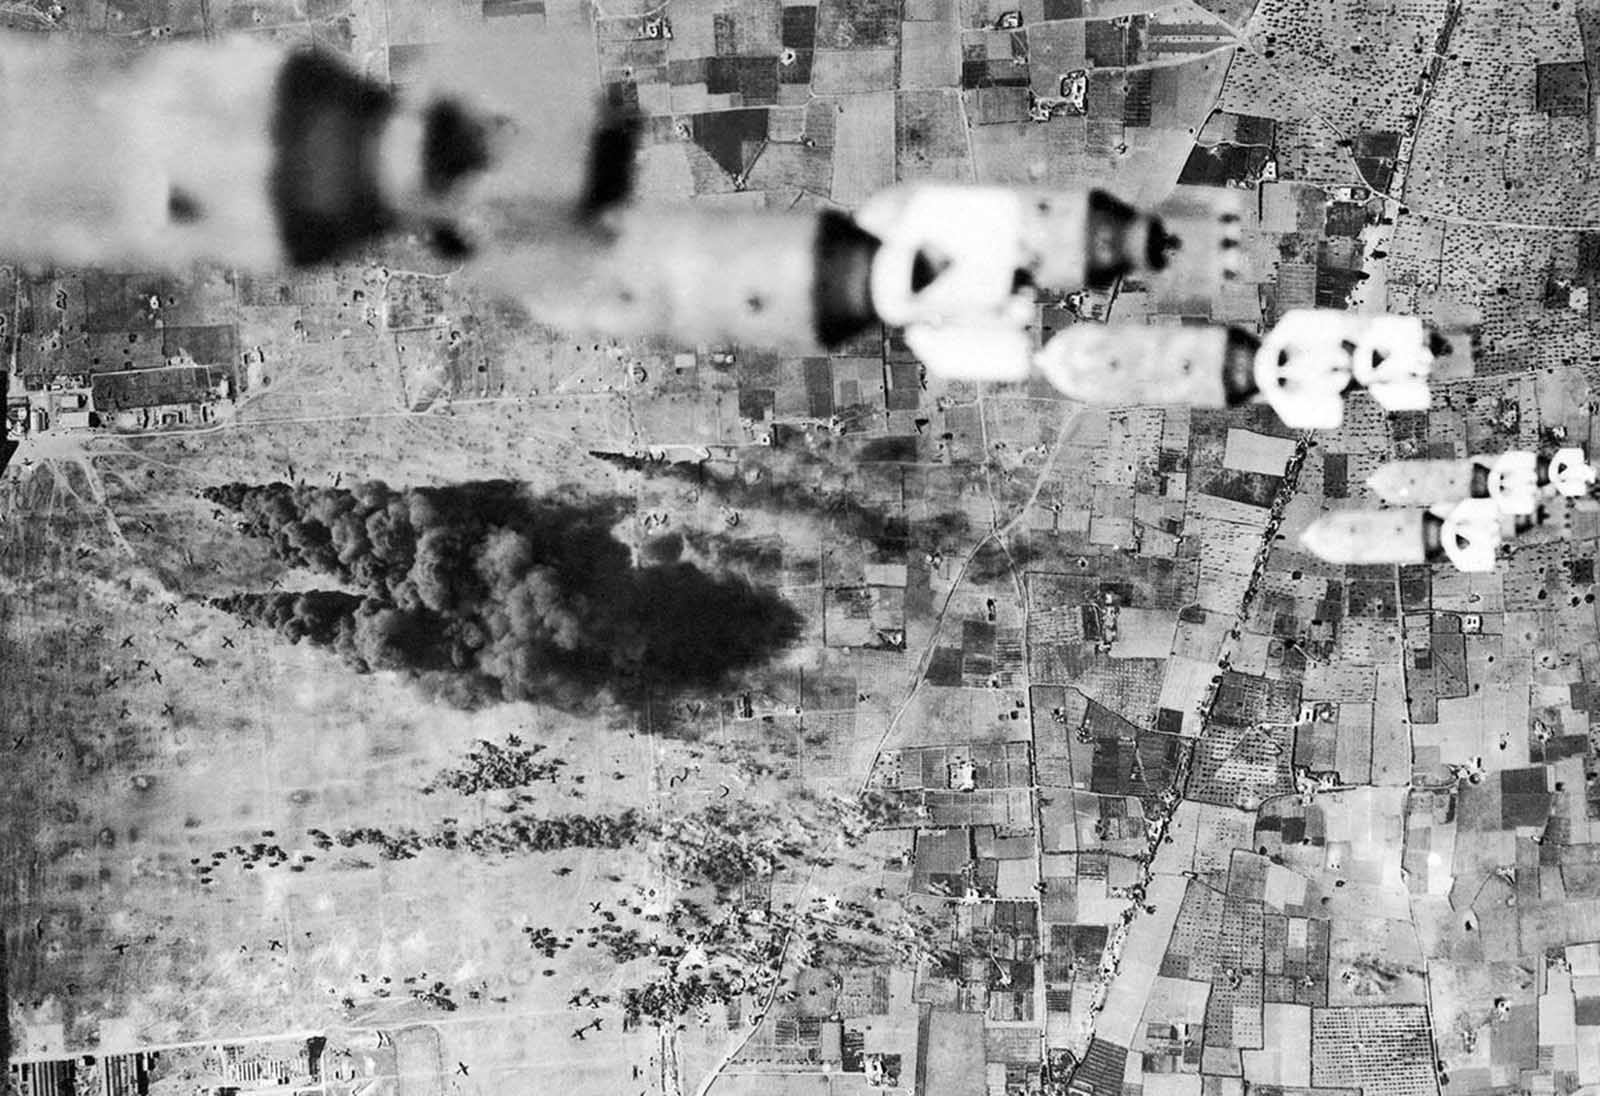 B-17 bombers, of the U.S. Army's Twelfth Air force, dropped fragmentation bombs on the important El Aouina airdrome at Tunis, Tunisia, and covered the airdrome and field completely. On the field below enemy planes can be seen burning, on February 14, 1943.